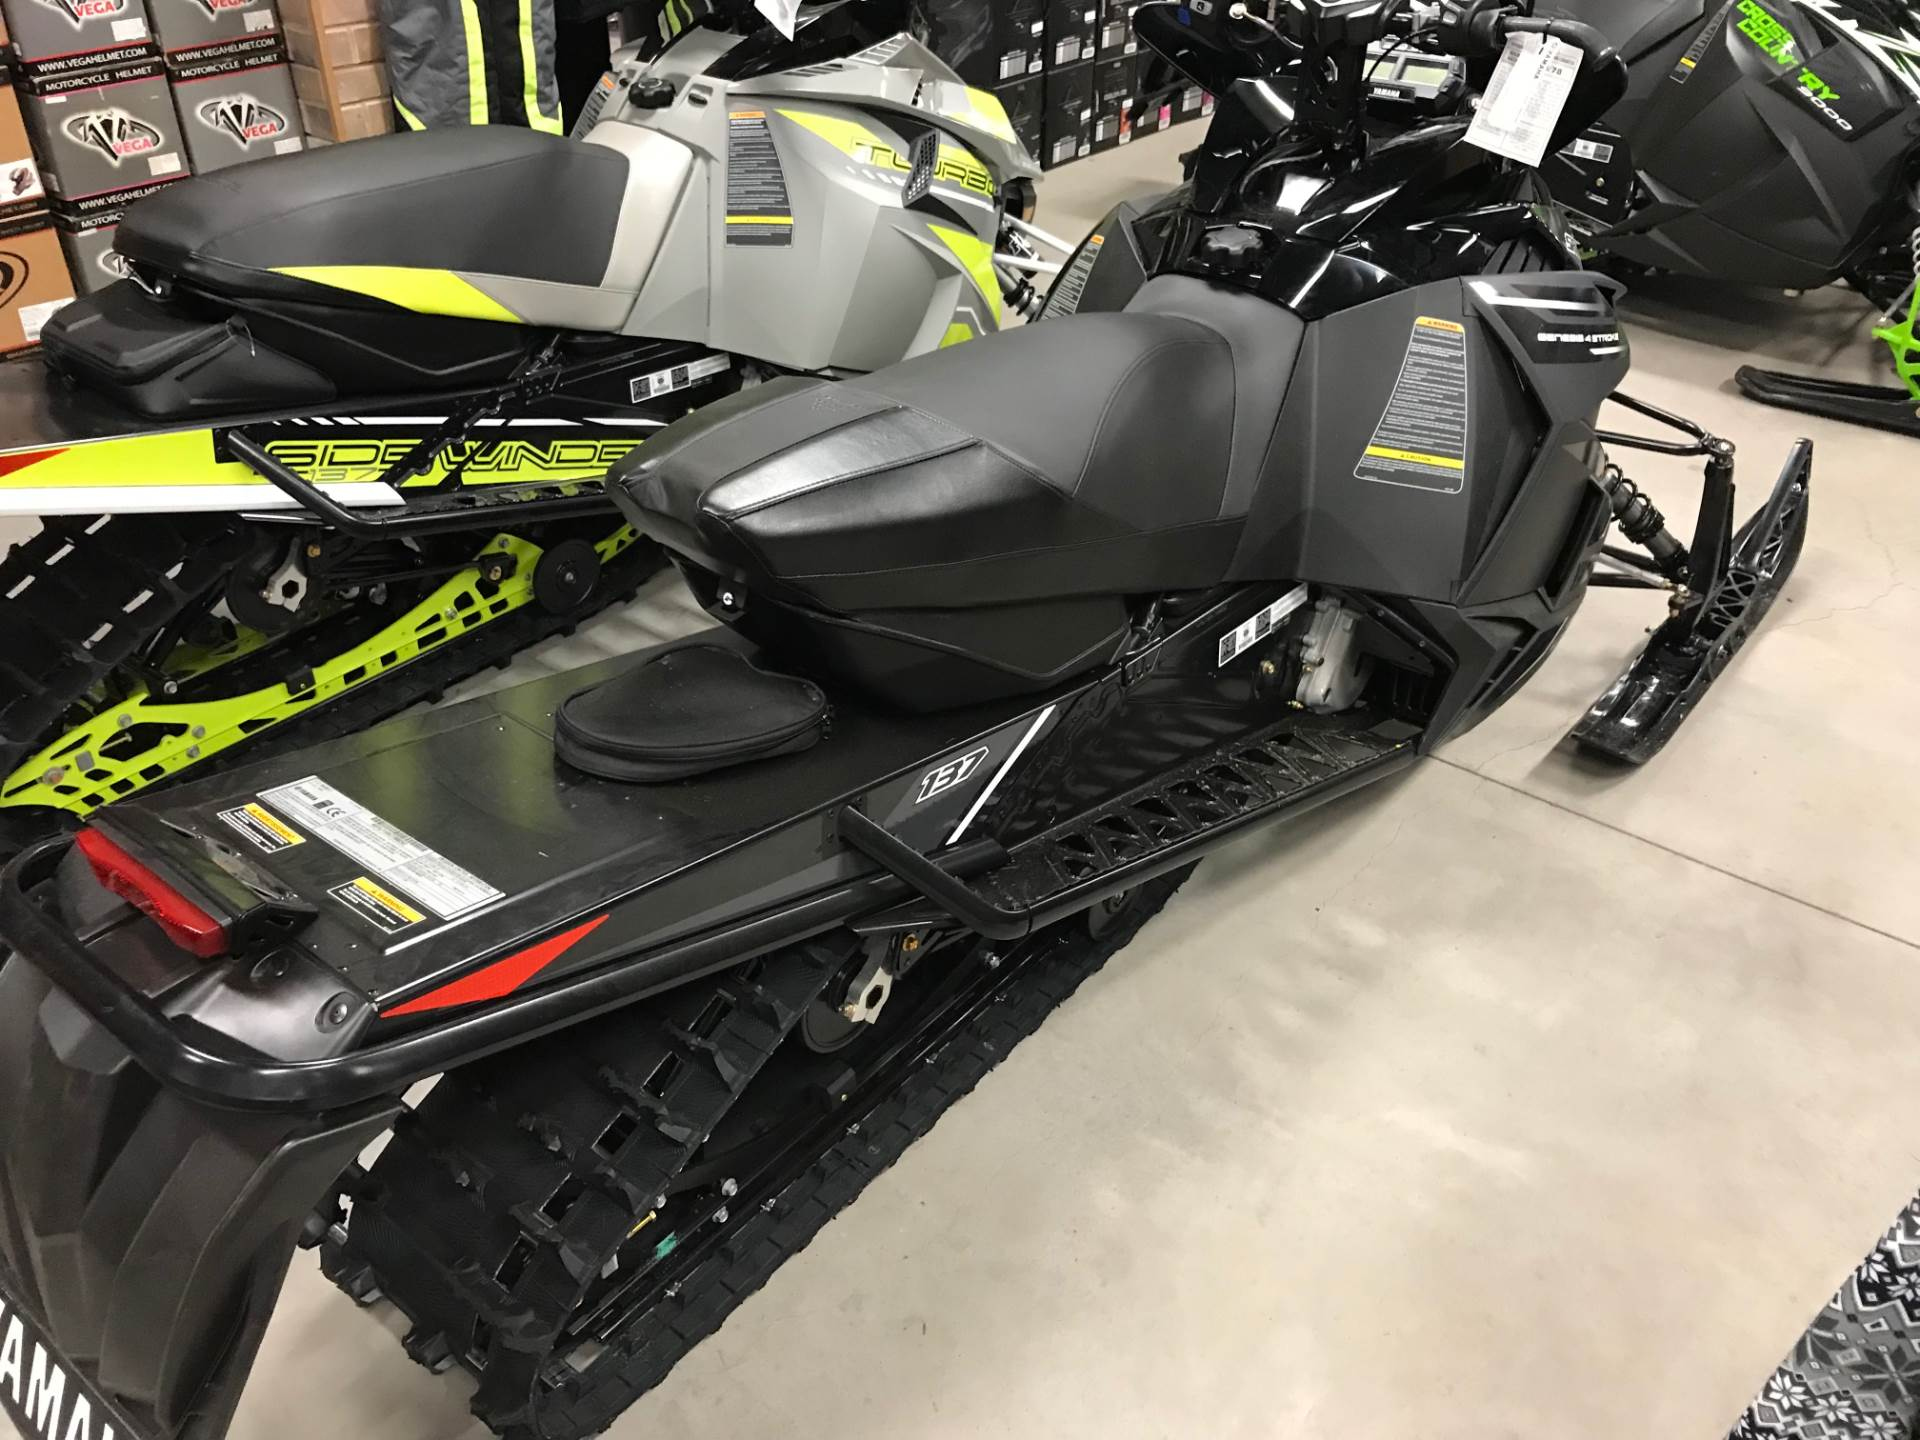 2018 Yamaha SRViper L-TX in Hancock, Michigan